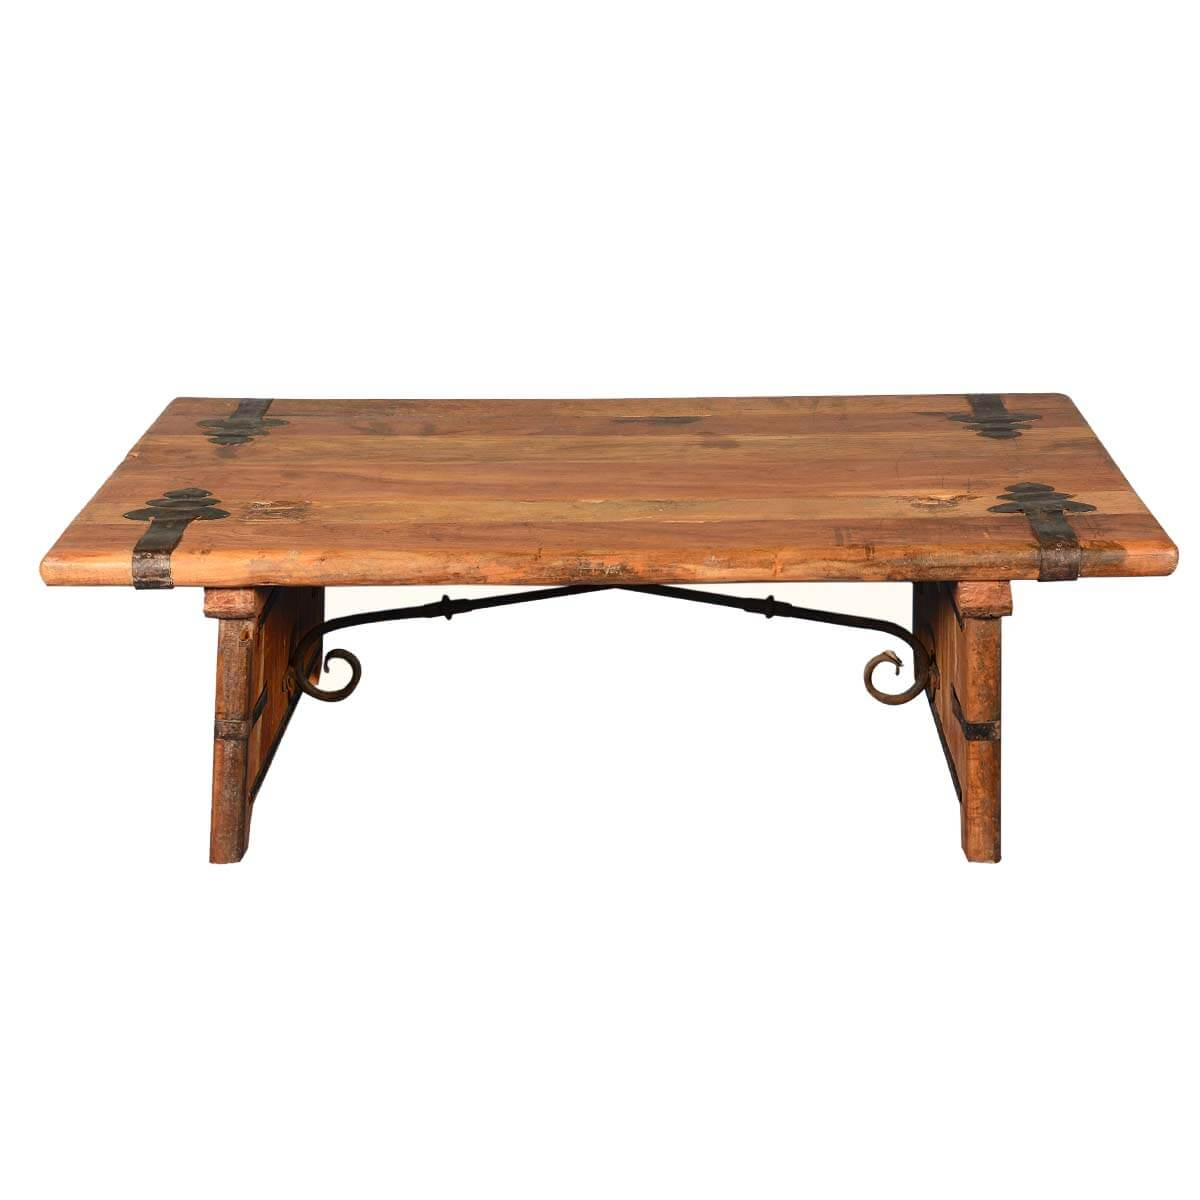 Rustic reclaimed wood wrought iron hastings coffee table Wrought iron coffee tables